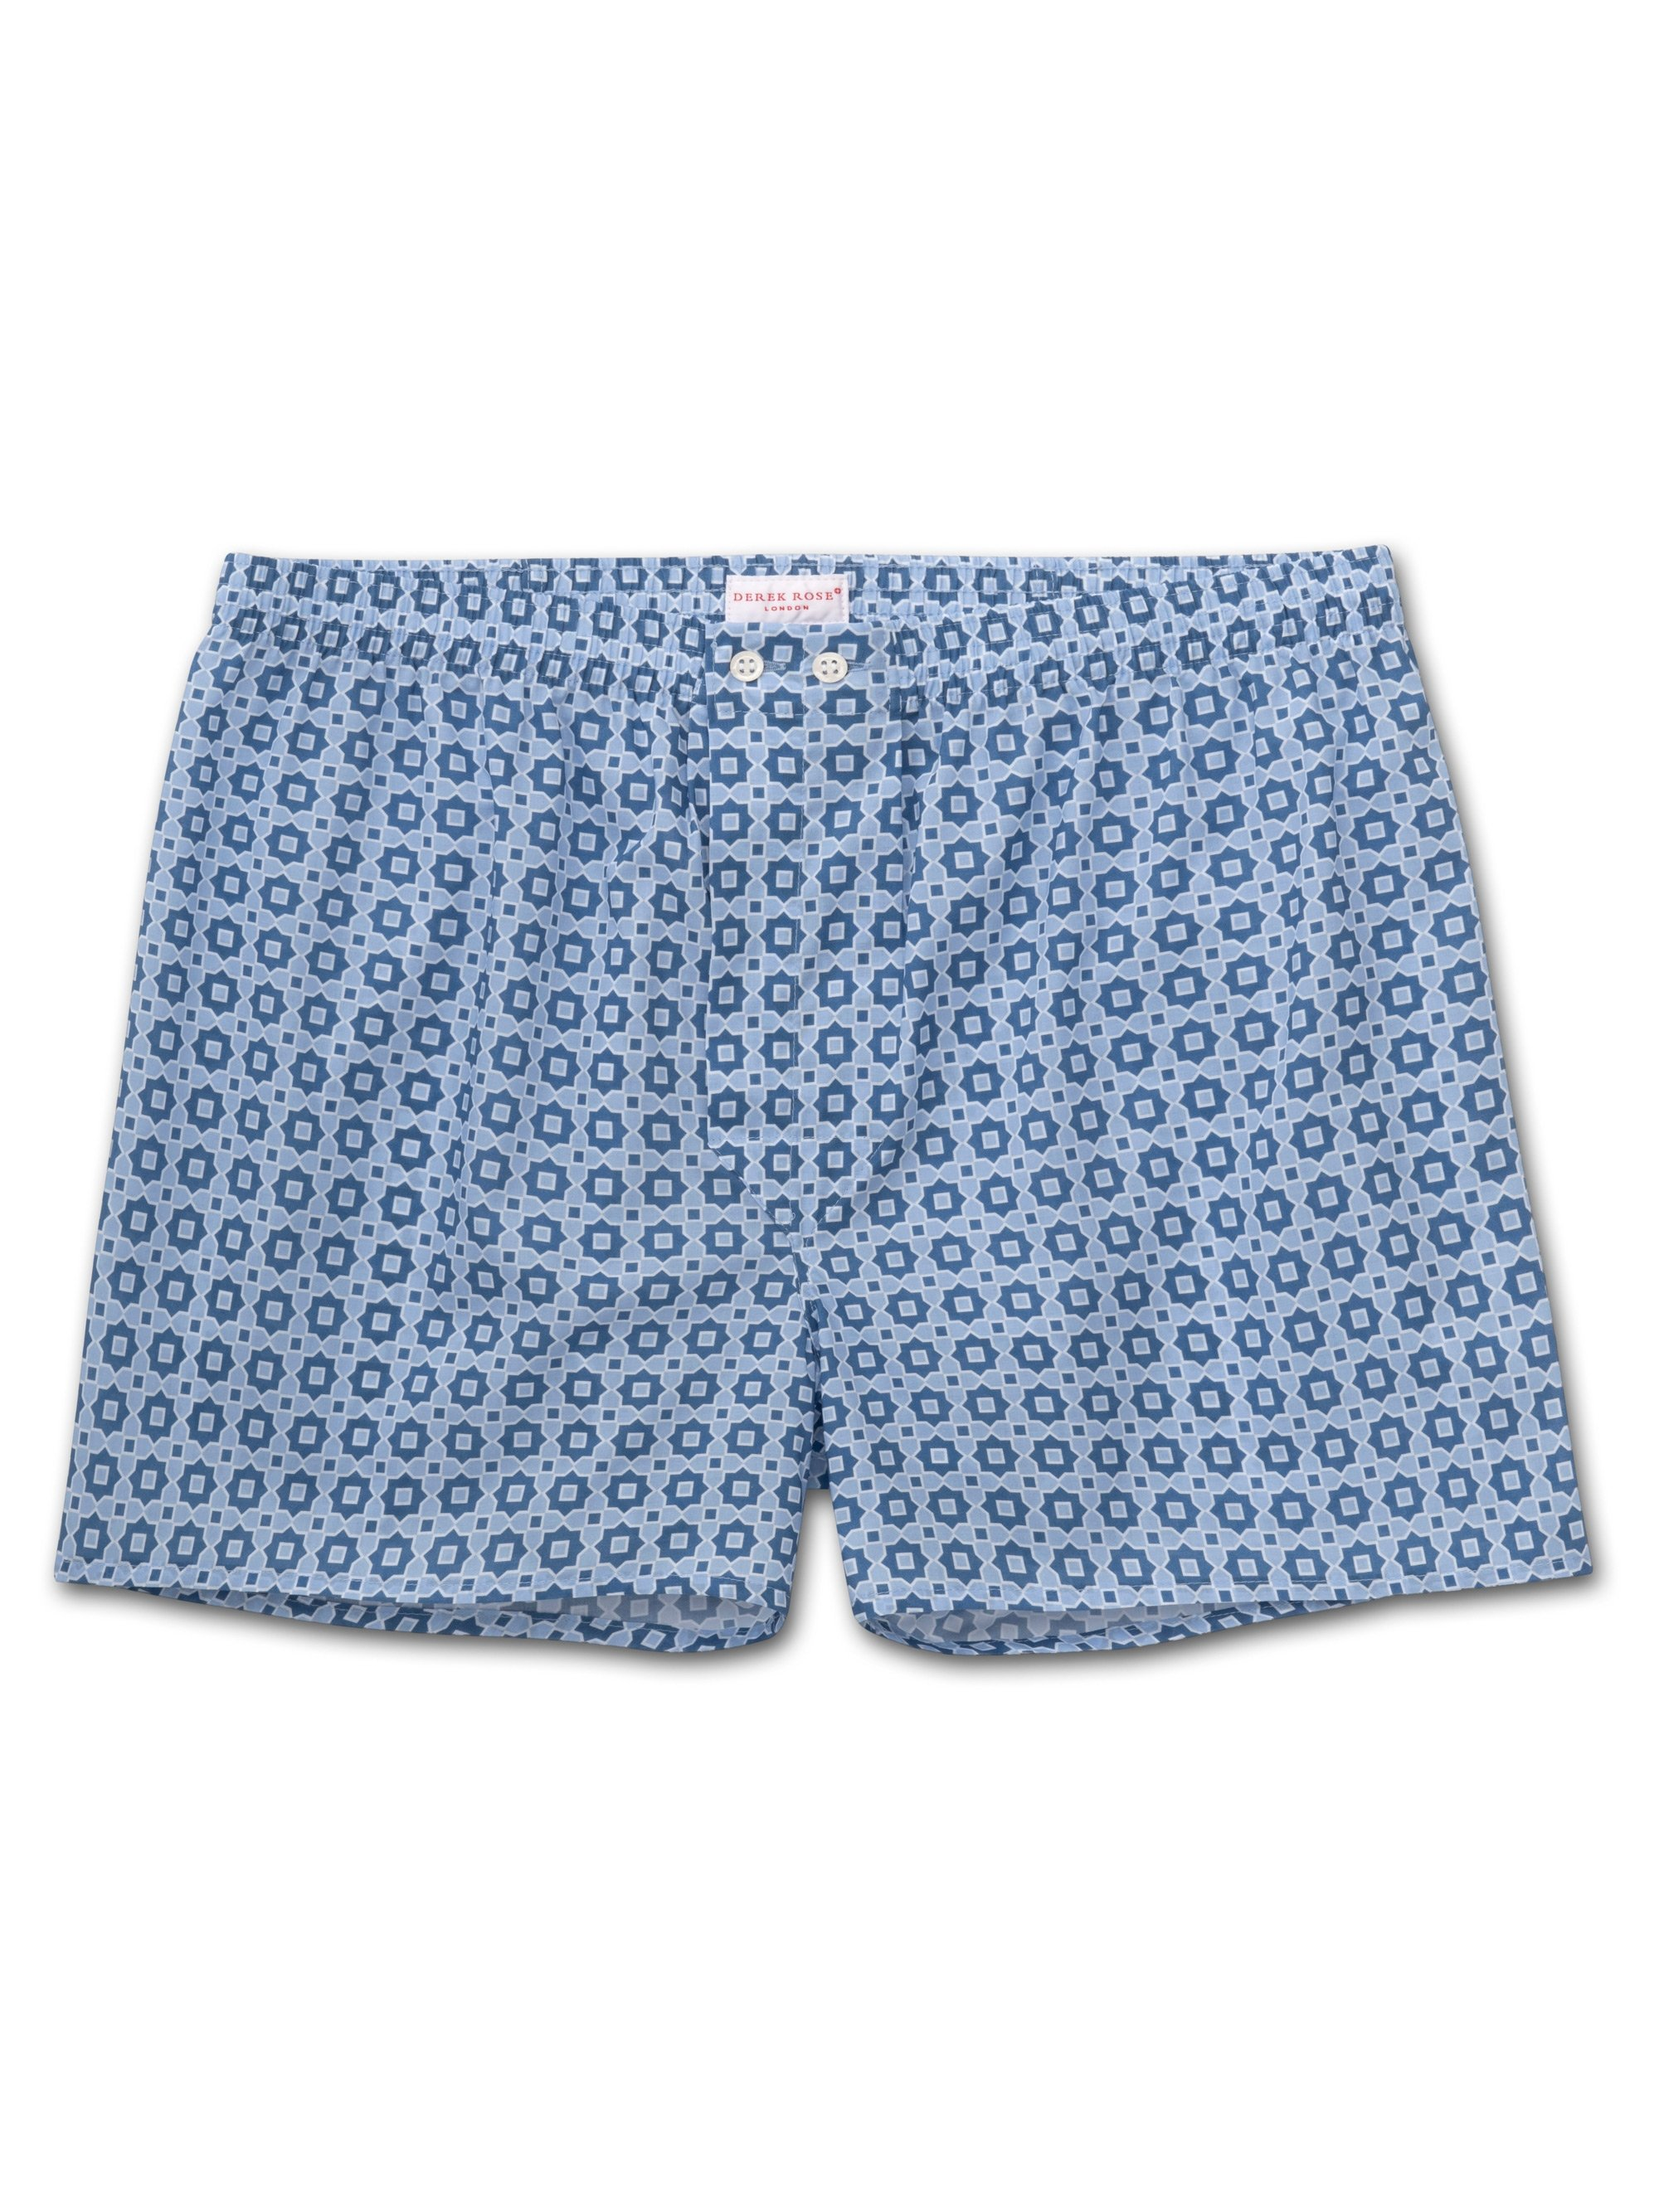 Men's Classic Fit Boxer Shorts Ledbury 34 Cotton Batiste Blue